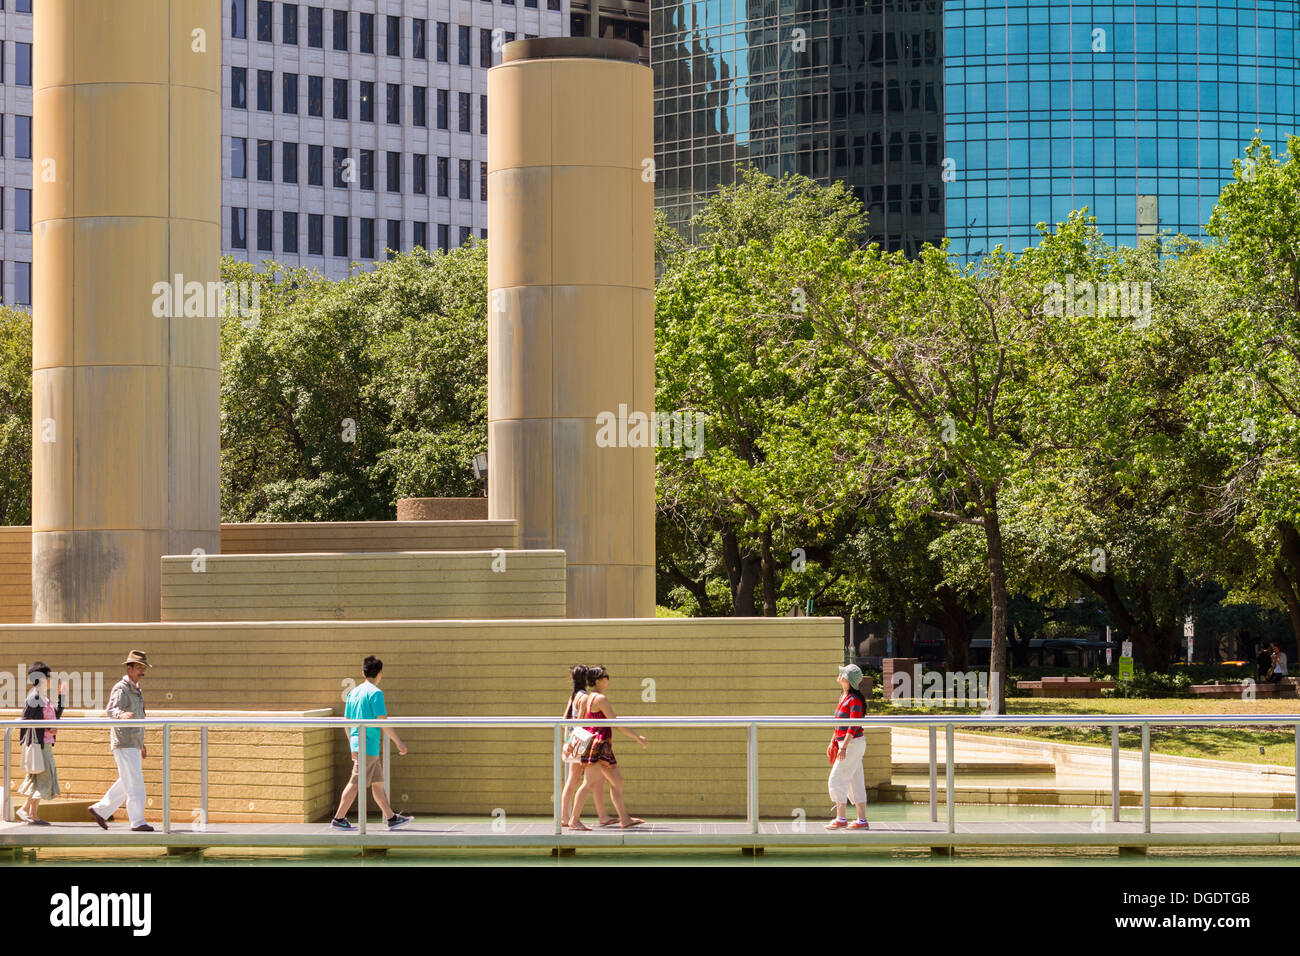 People walk through Tranquillity Park in front of Houston skyscrapers on a sunny day - Stock Image